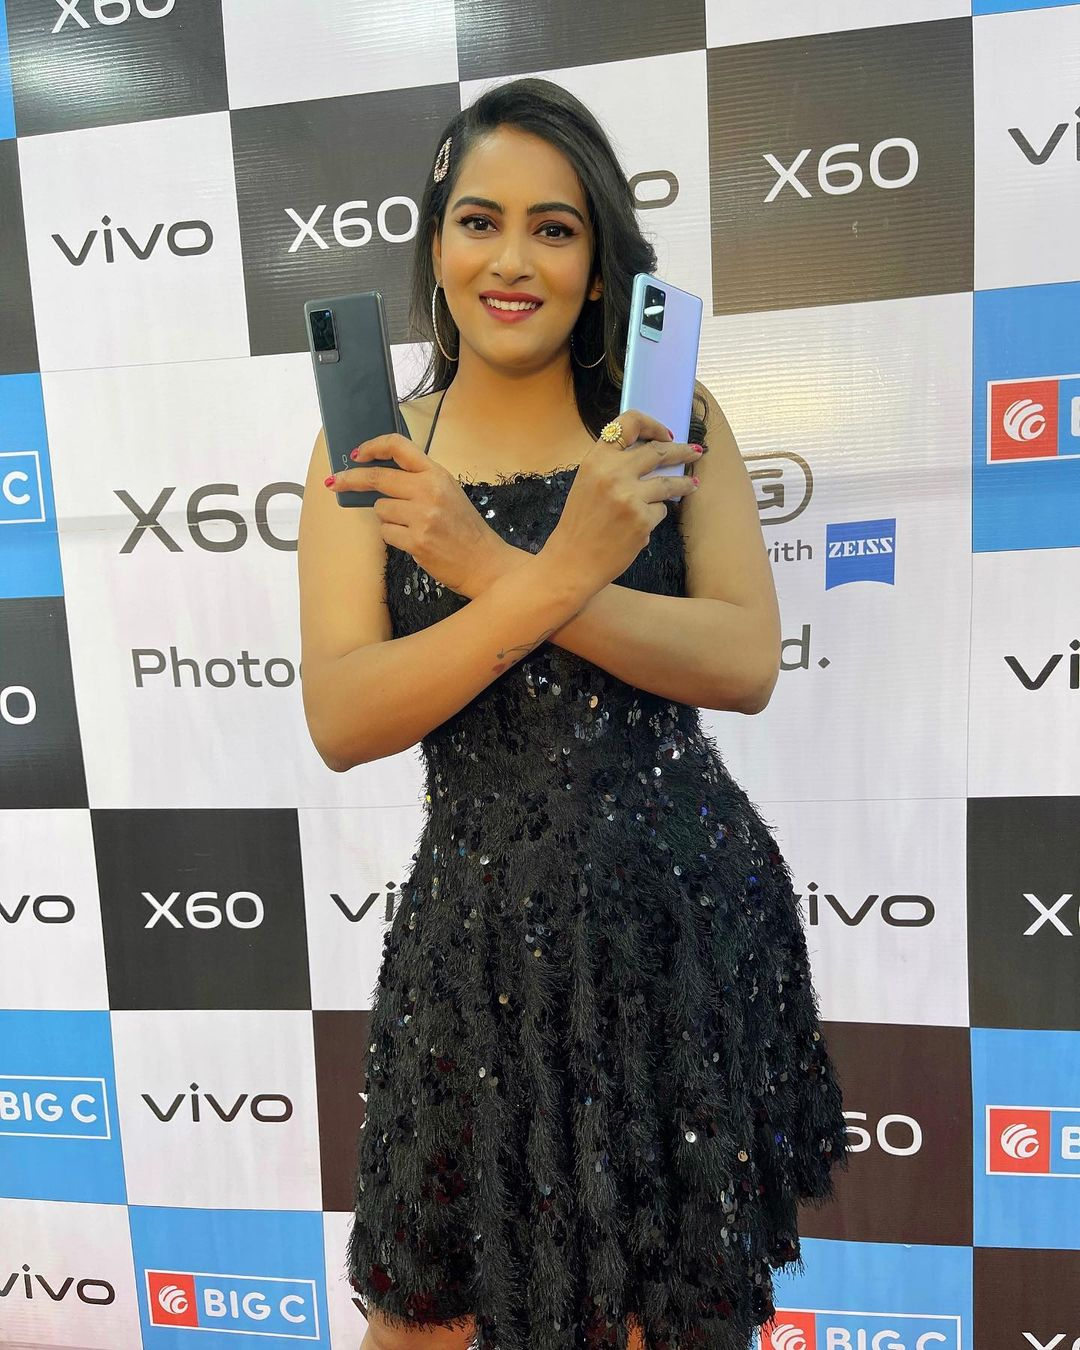 Himaja soo Happy to Launch VIVO X60 PRO at BIGC AMEERPET . Himaja in black dress. 2021-04-04